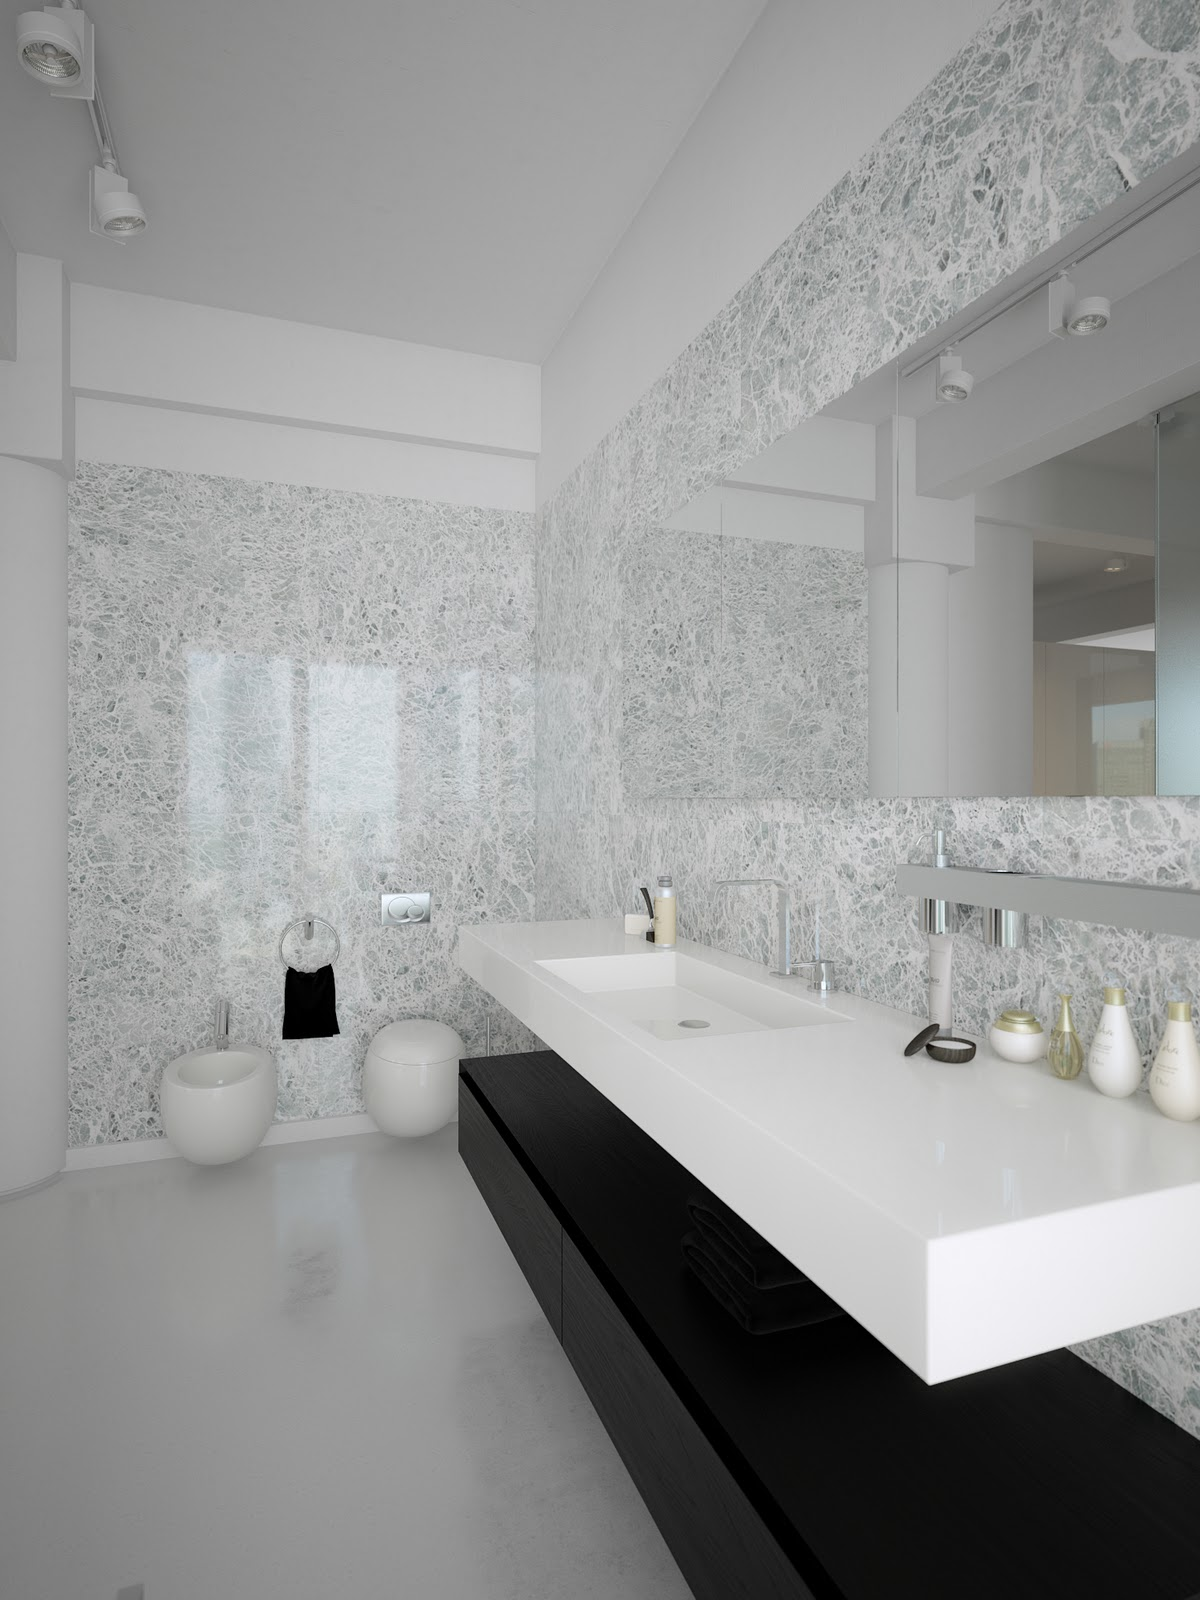 Bathroom Design White And Black : Black white contemporary bathroom design interior